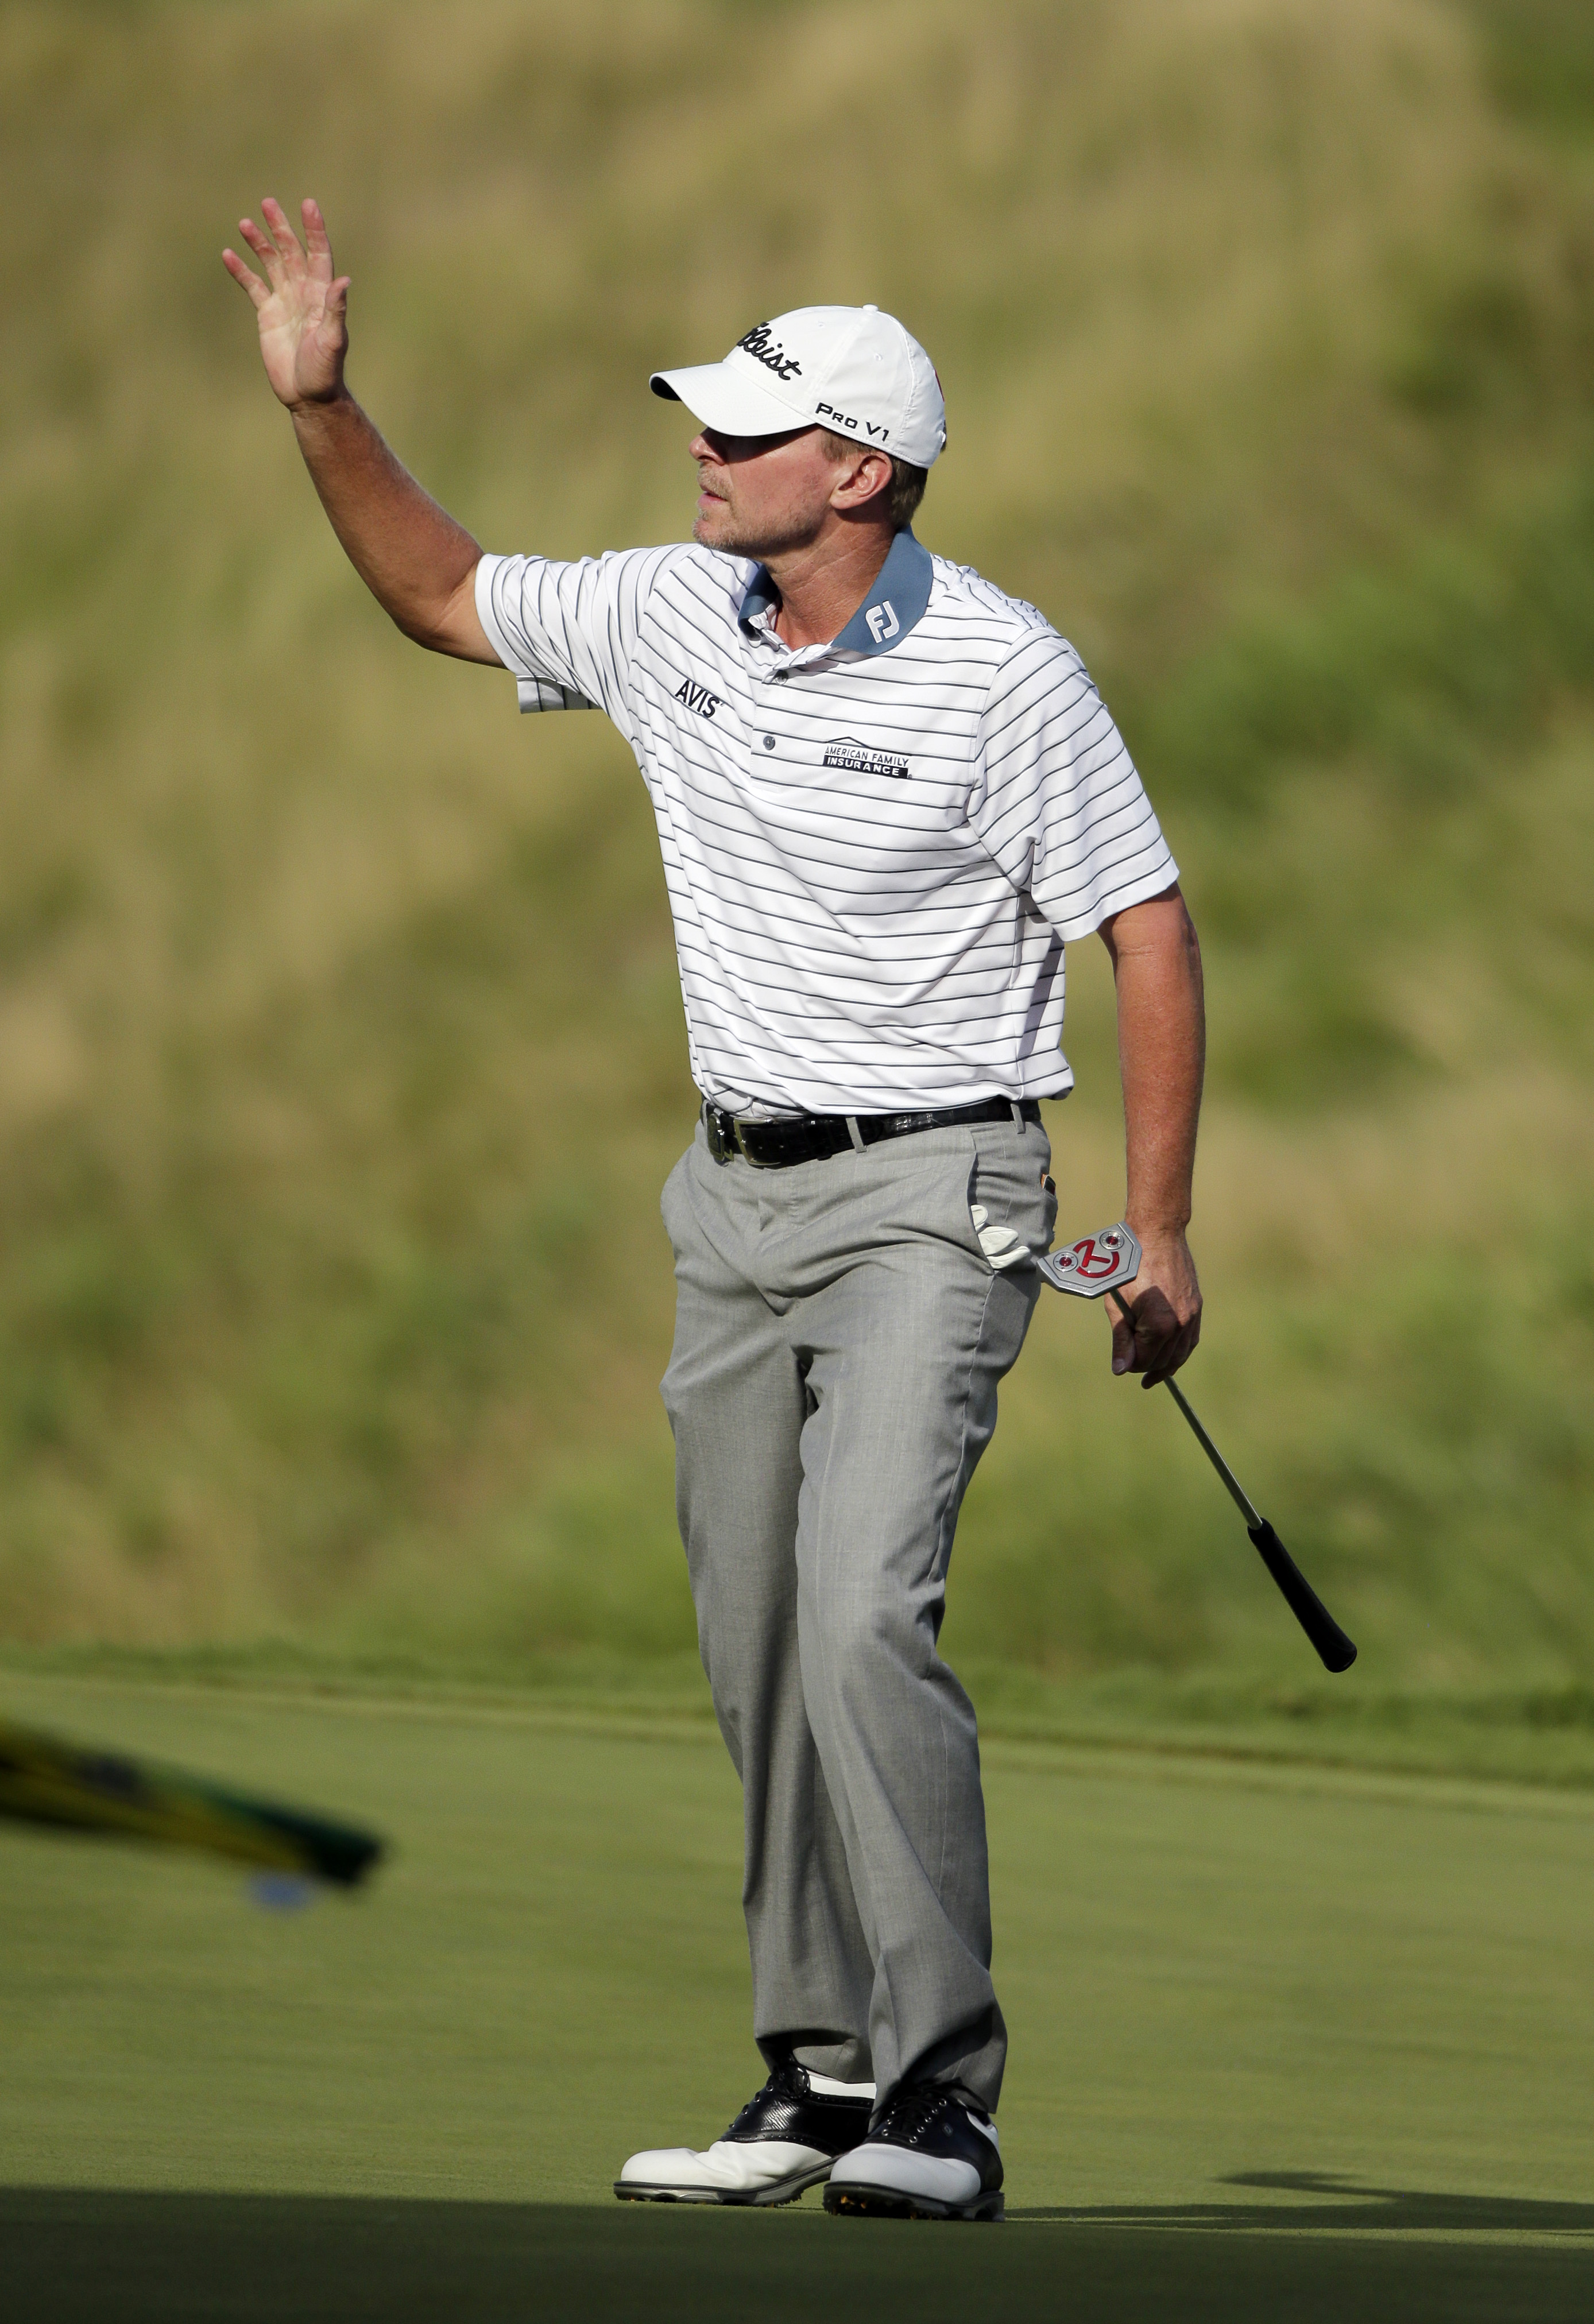 Steve Stricker waves after a birdie on the 18th hole during the first round of the PGA Championship golf tournament Thursday, Aug. 13, 2015, at Whistling Straits in Haven, Wis. (AP Photo/Chris Carlson)